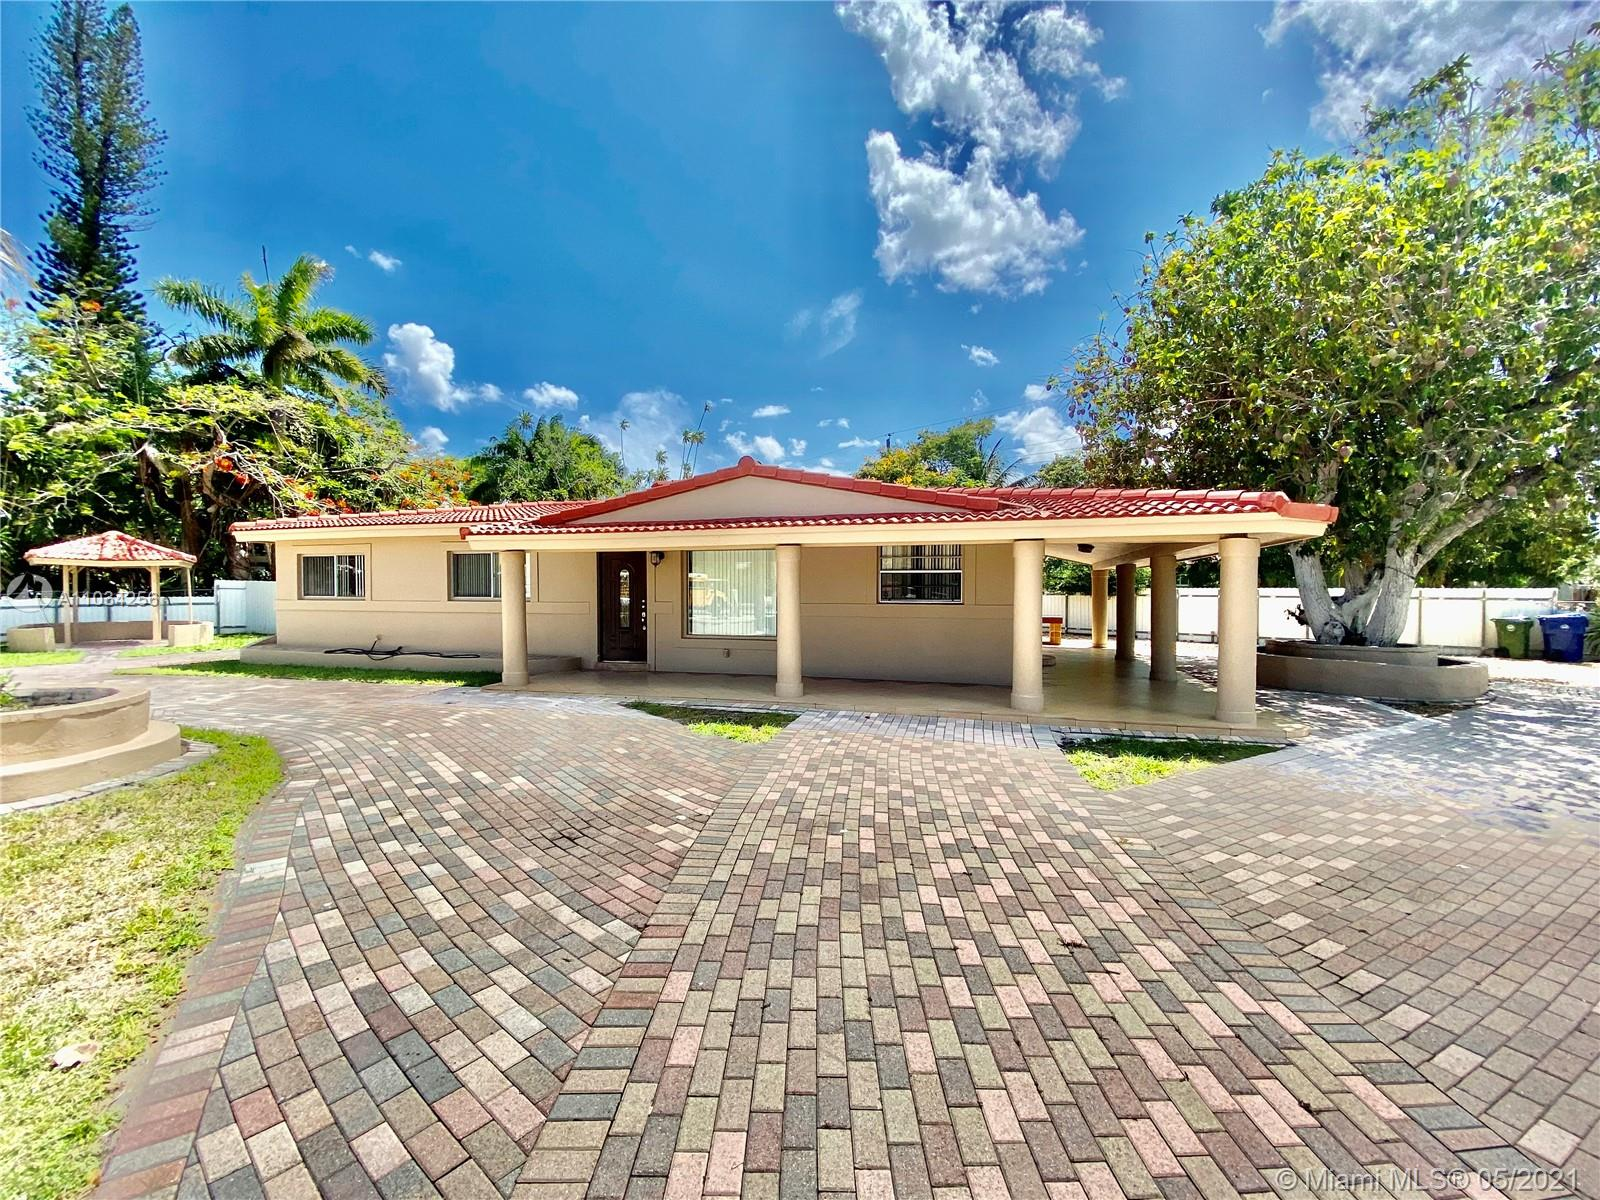 900 NW 29th St, Wilton Manors, Florida 33311